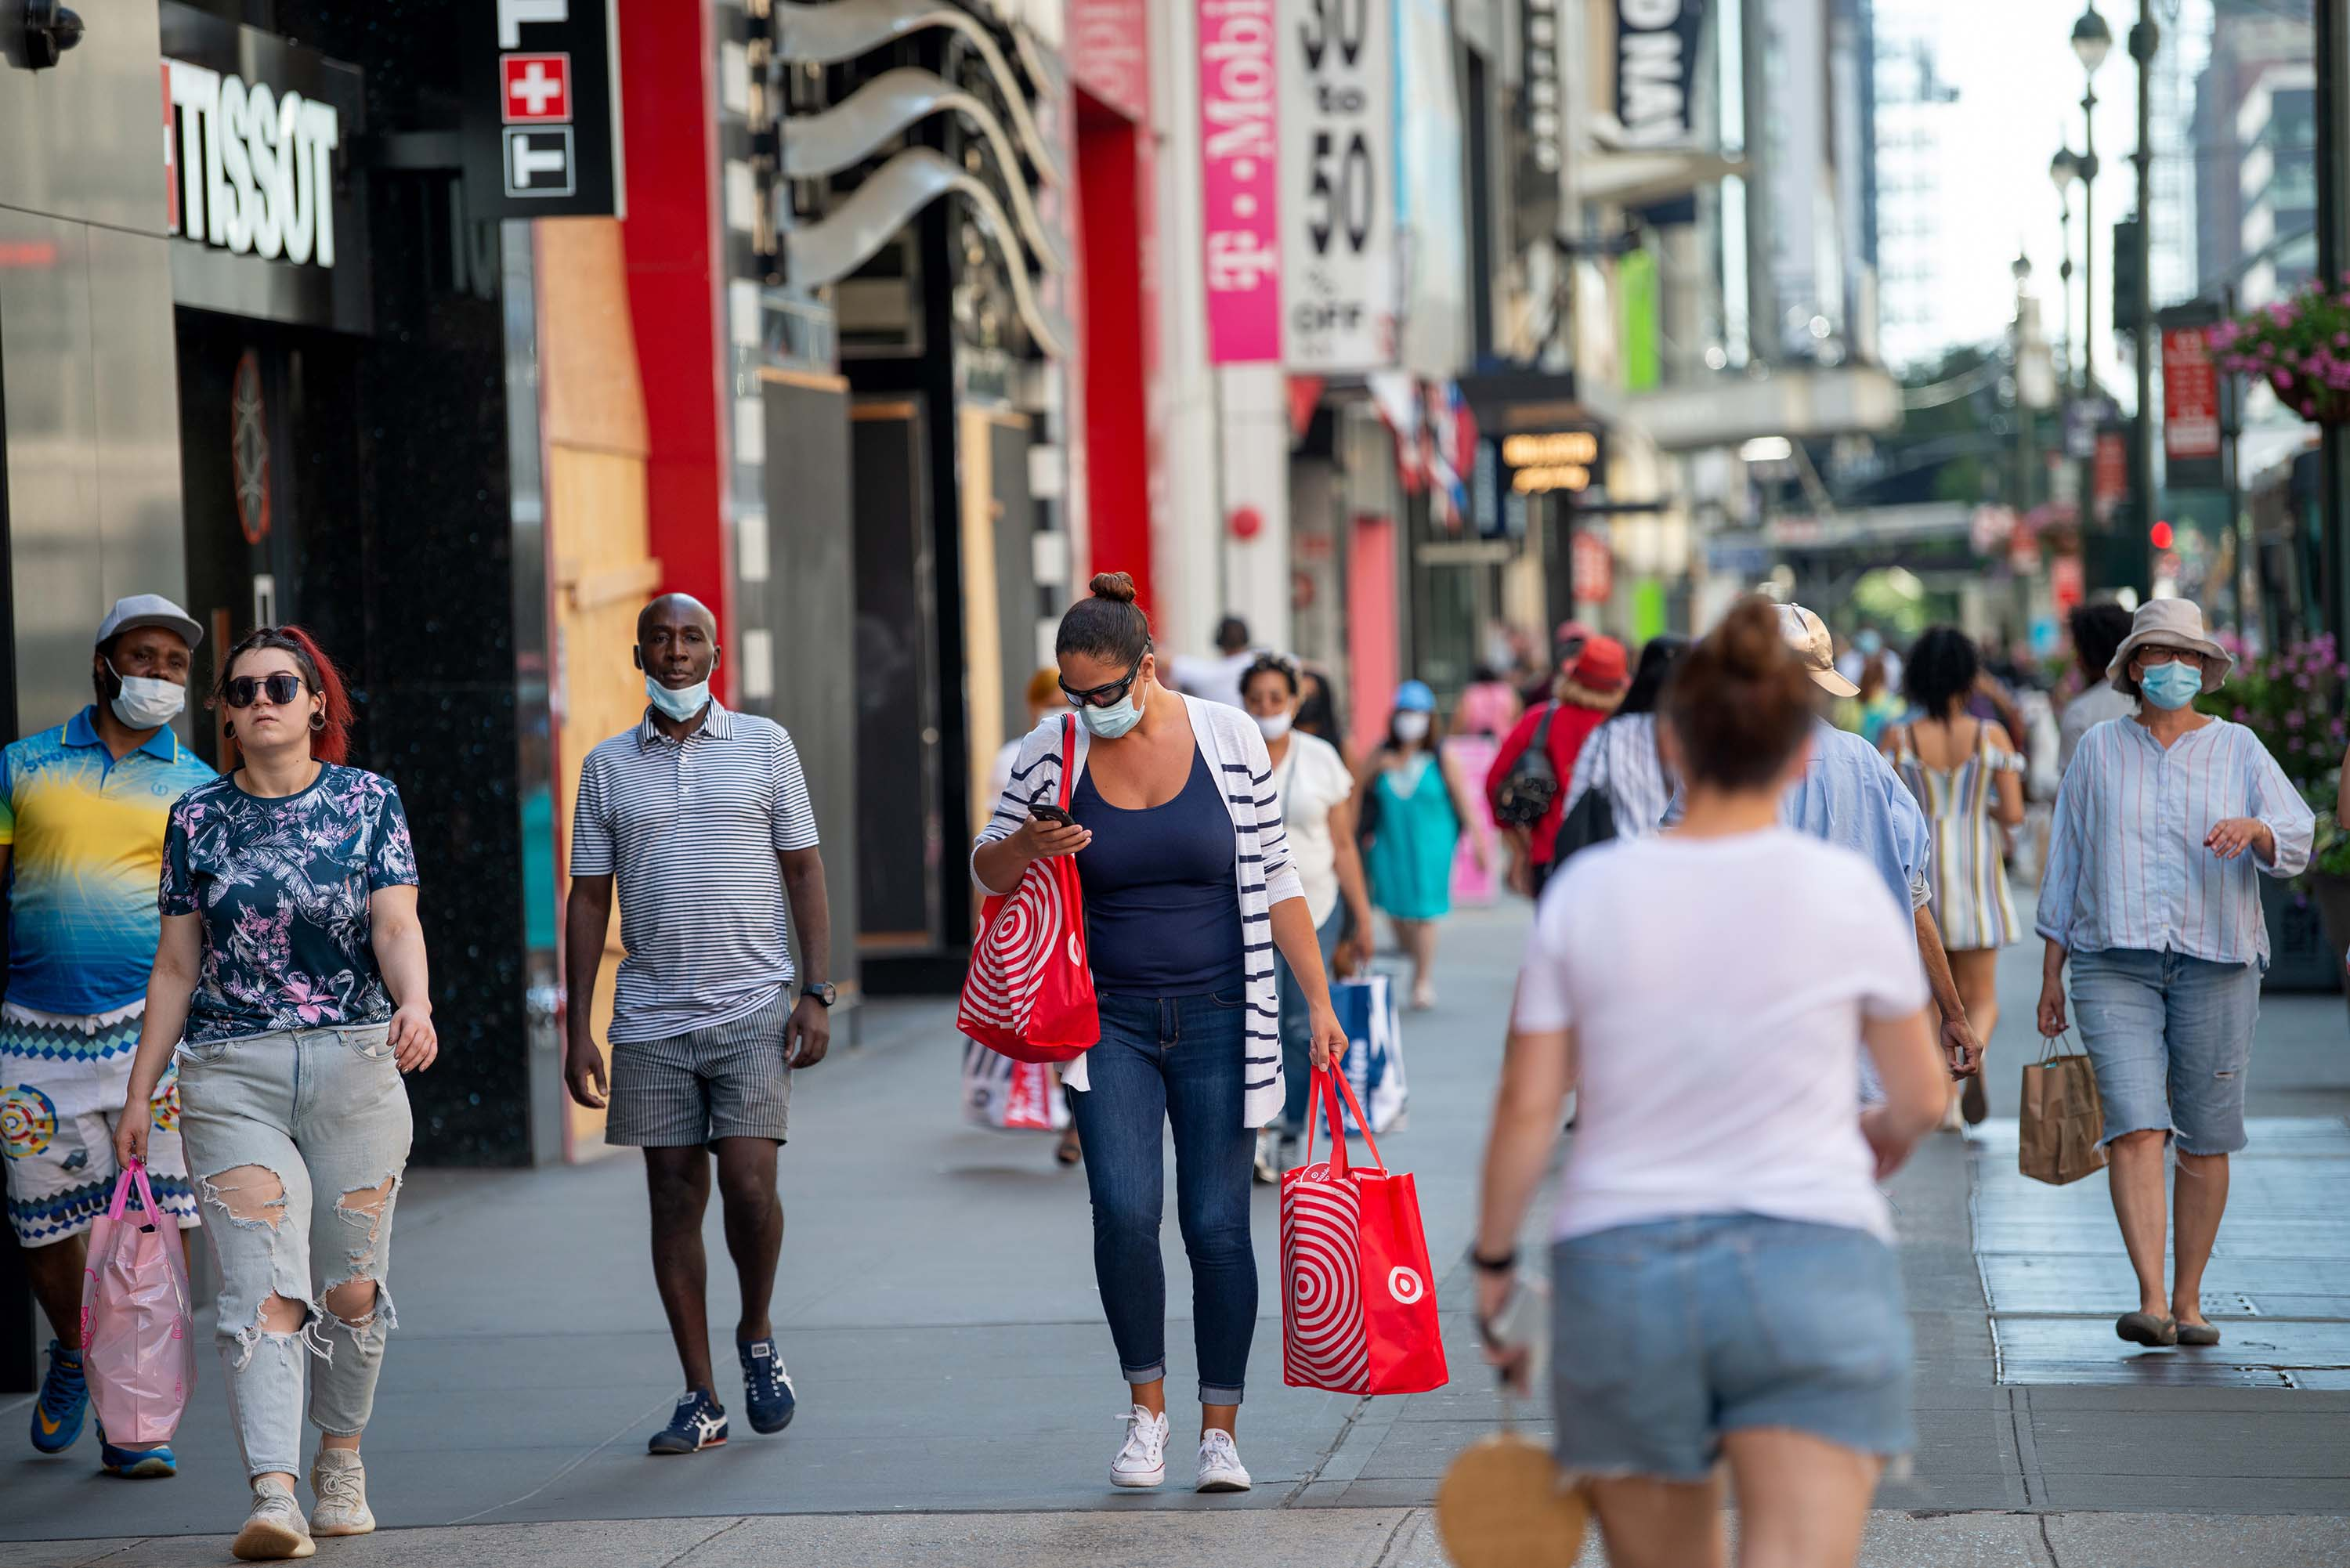 Pedestrians wearing face masks carry shopping bags in New York City on June 24.